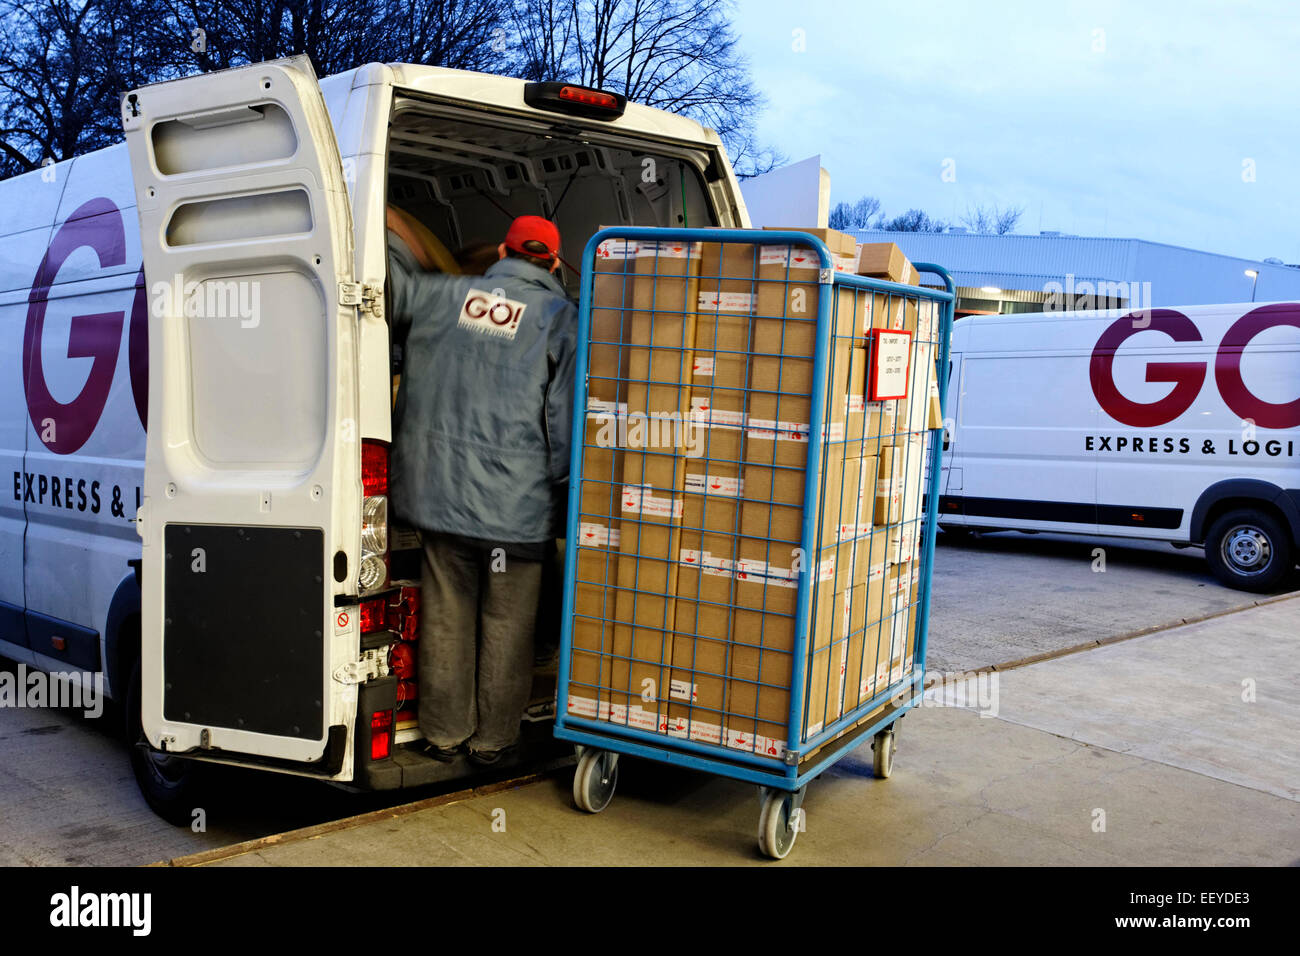 GO Express Logistik GmbH Stock Photo